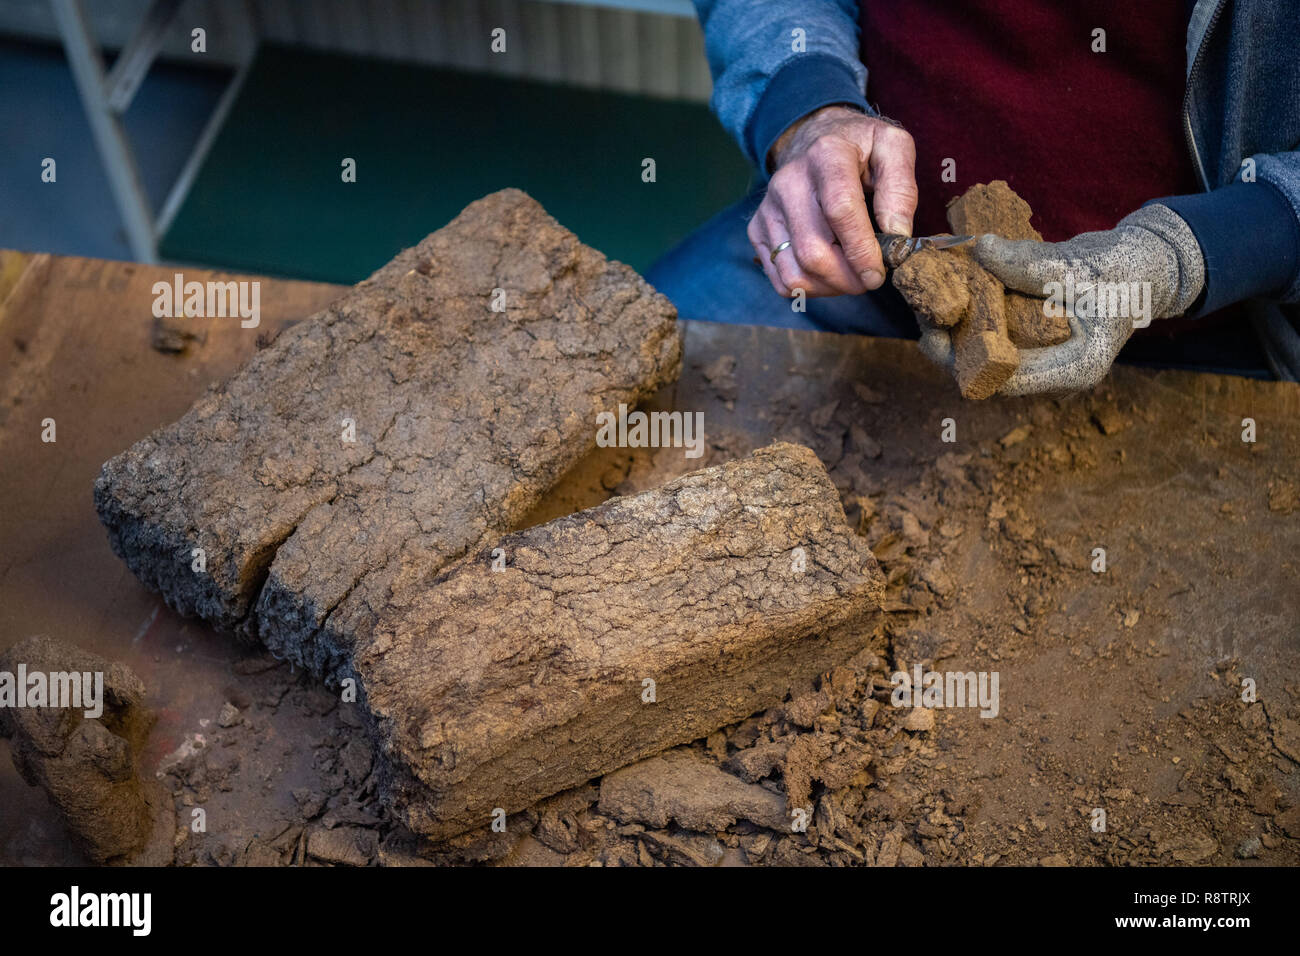 Saterland, Germany. 22nd Nov, 2018. Karl-Heinz Brinkmann carves Christmas figures from peat in his home workshop. The 64 year old Saterland artist works with many materials. But the dried white peat is special: it is 2000 years old. Credit: Mohssen Assanimoghaddam/dpa/Alamy Live News Stock Photo